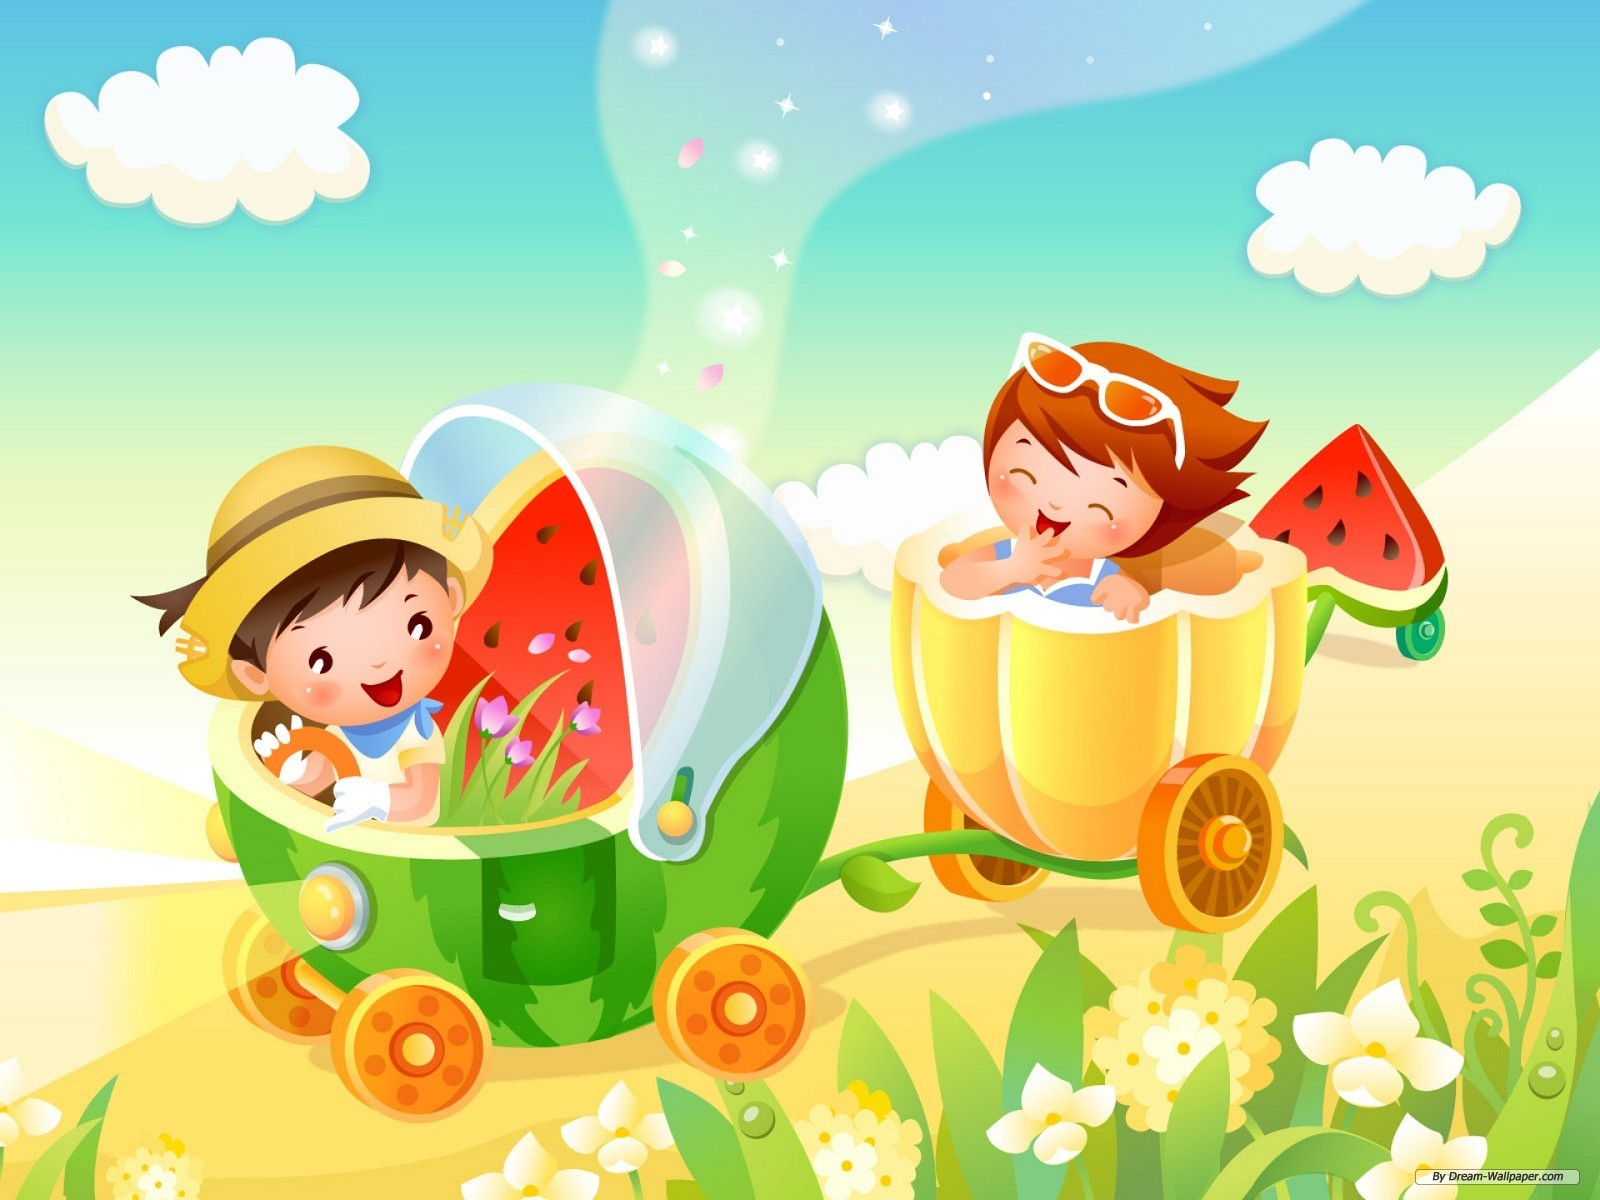 50 colorful cartoon wallpapers for kids backgrounds in hd - Cute cartoon hd images ...